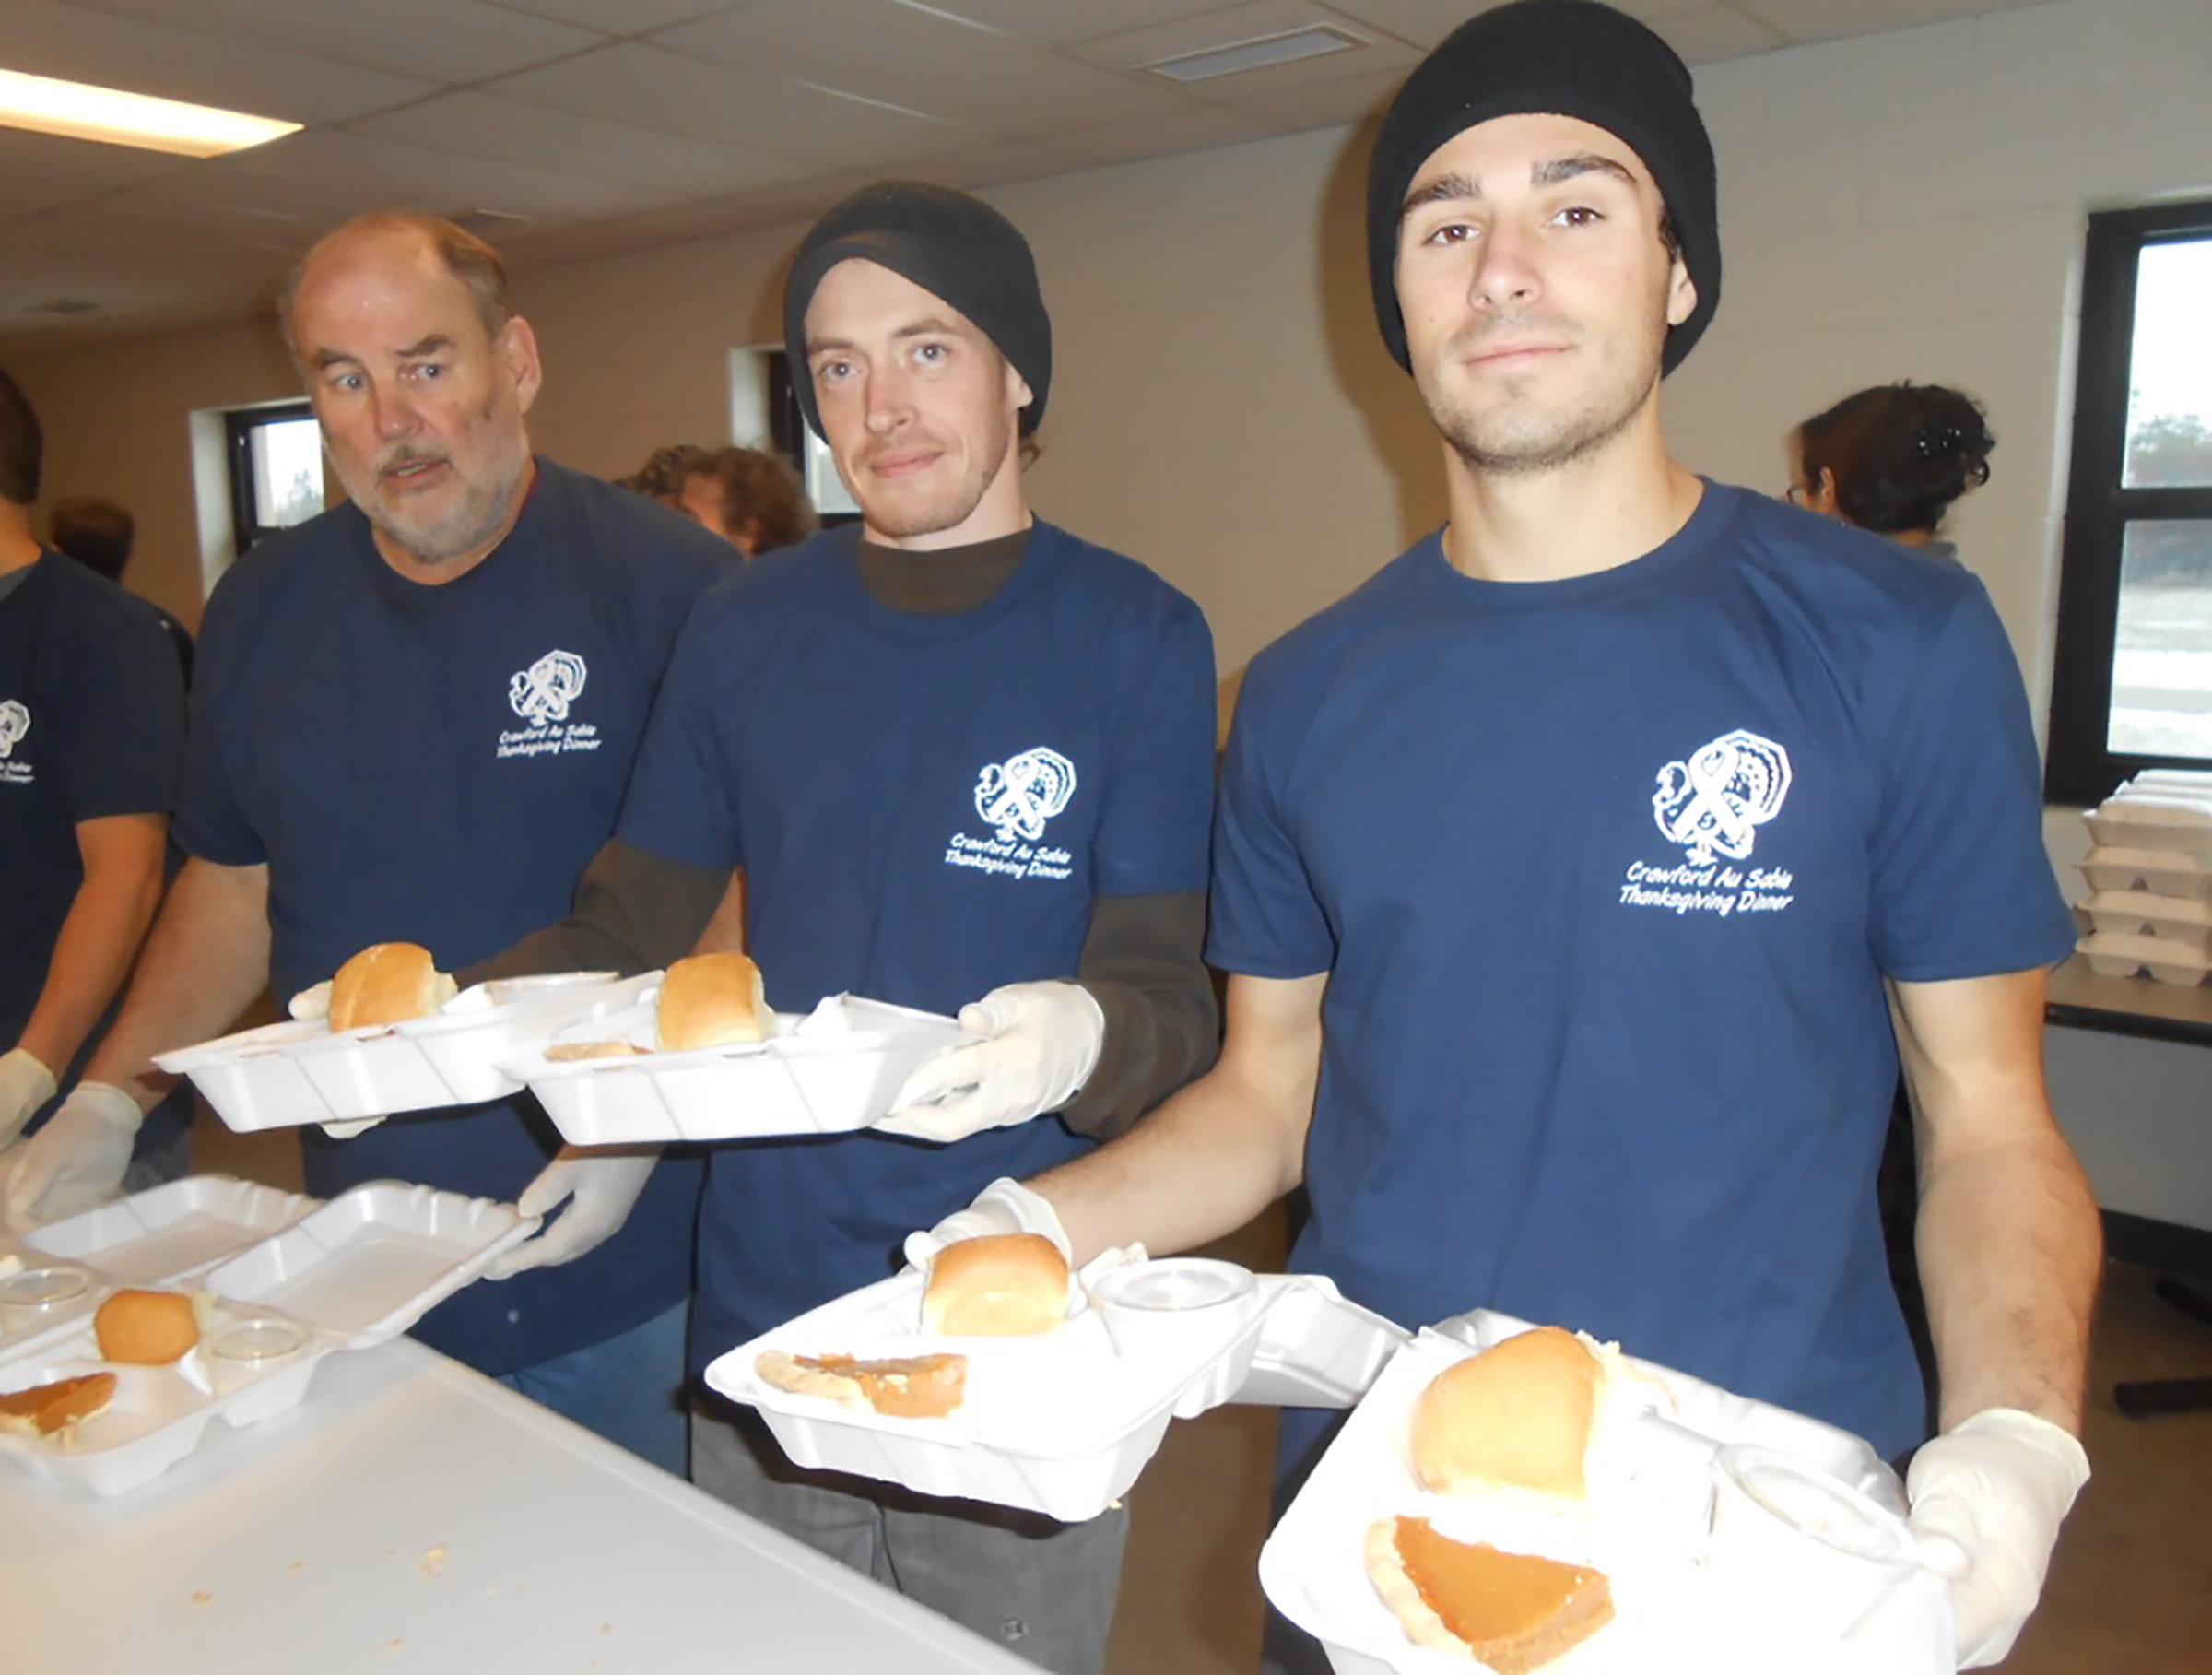 Above, volunteers go through an assembly line as they package meals for deliveries.